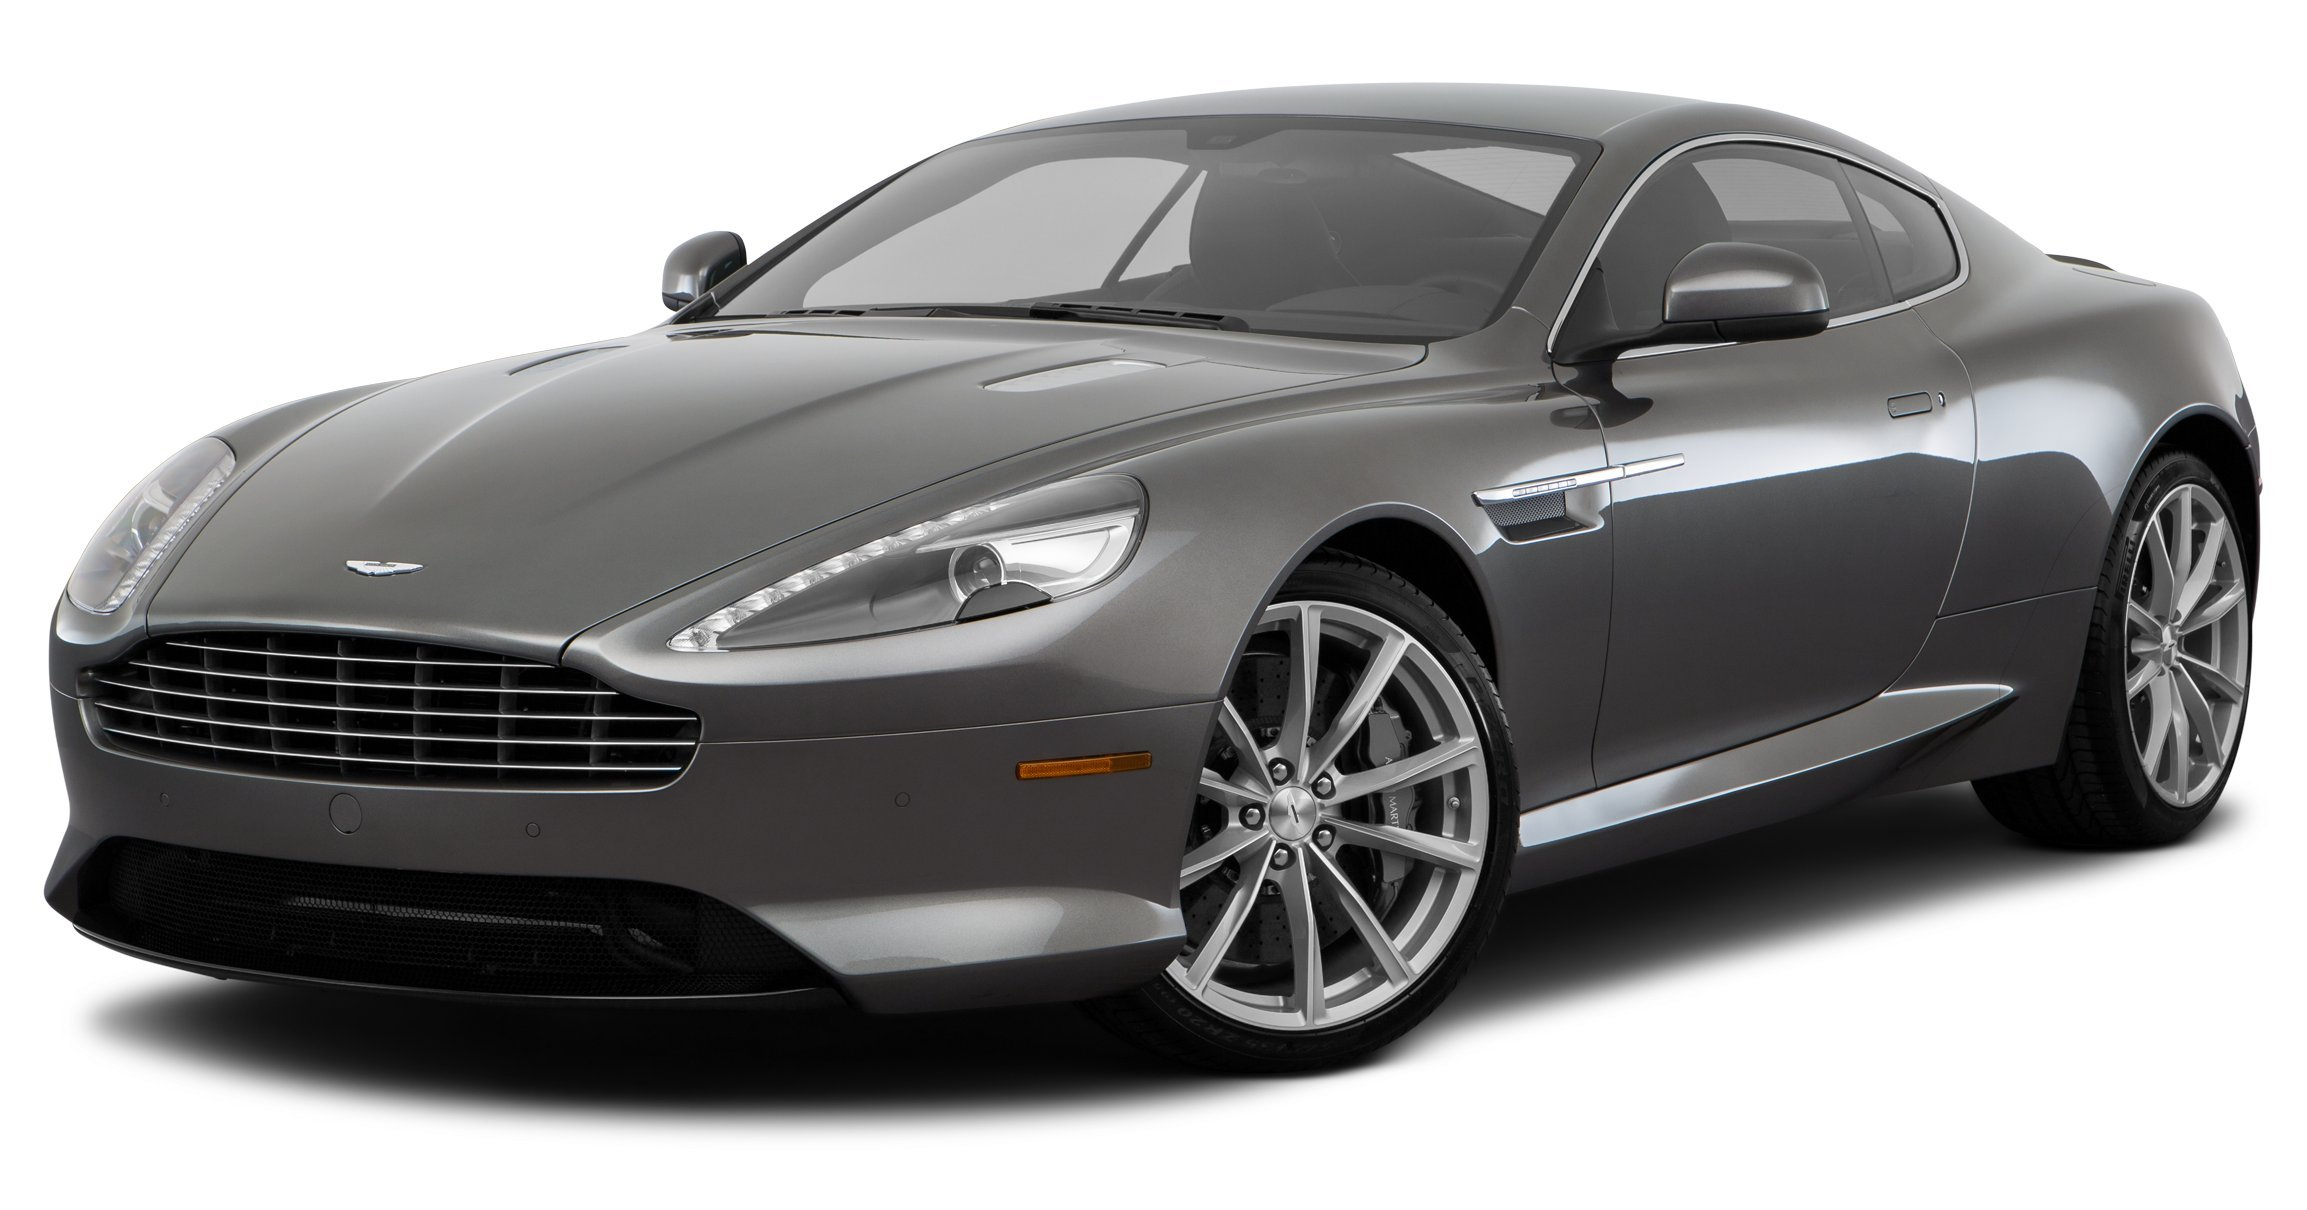 2016 Aston Martin DB9 GT Bond Edition 2 Door Coupe Automatic Transmission